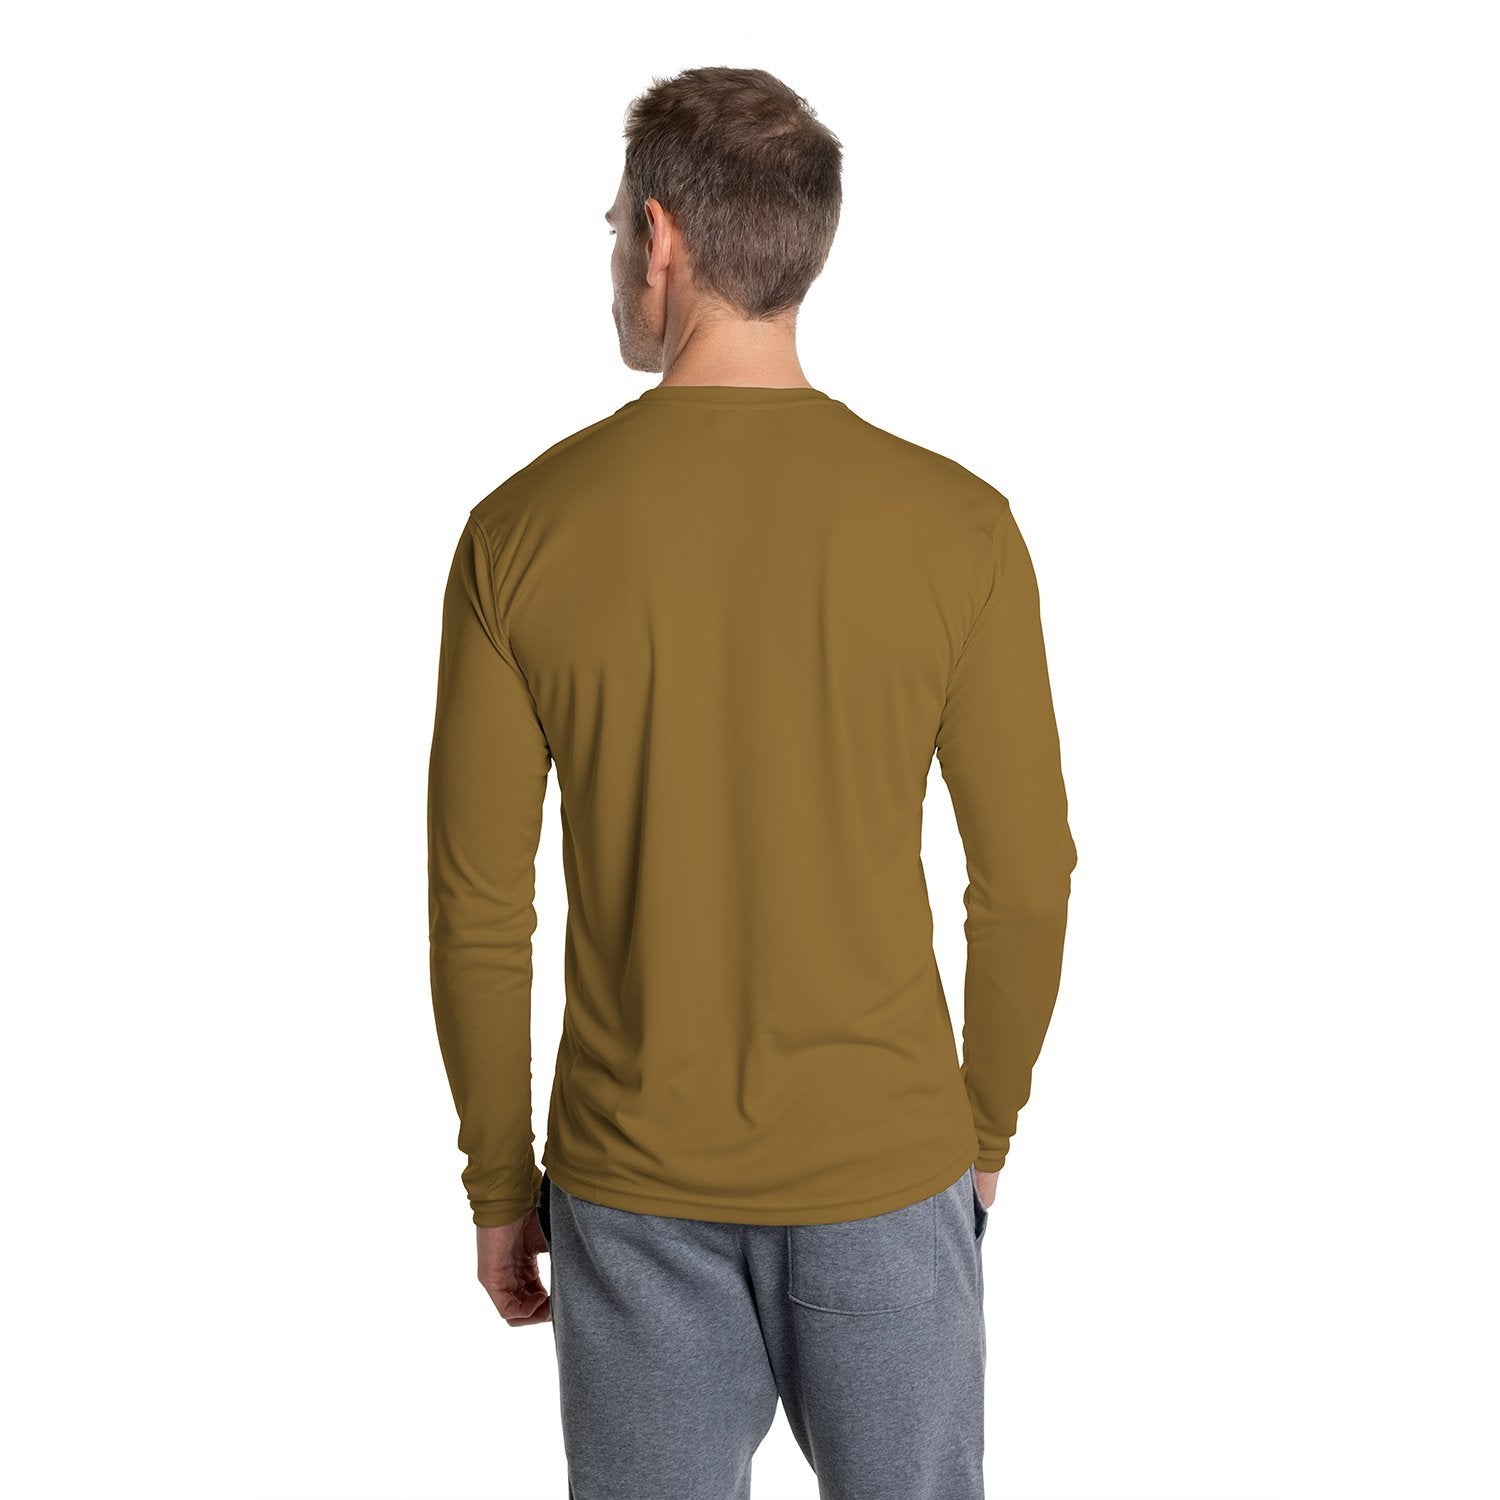 M700CY Solar Long Sleeve - Coyote Tan